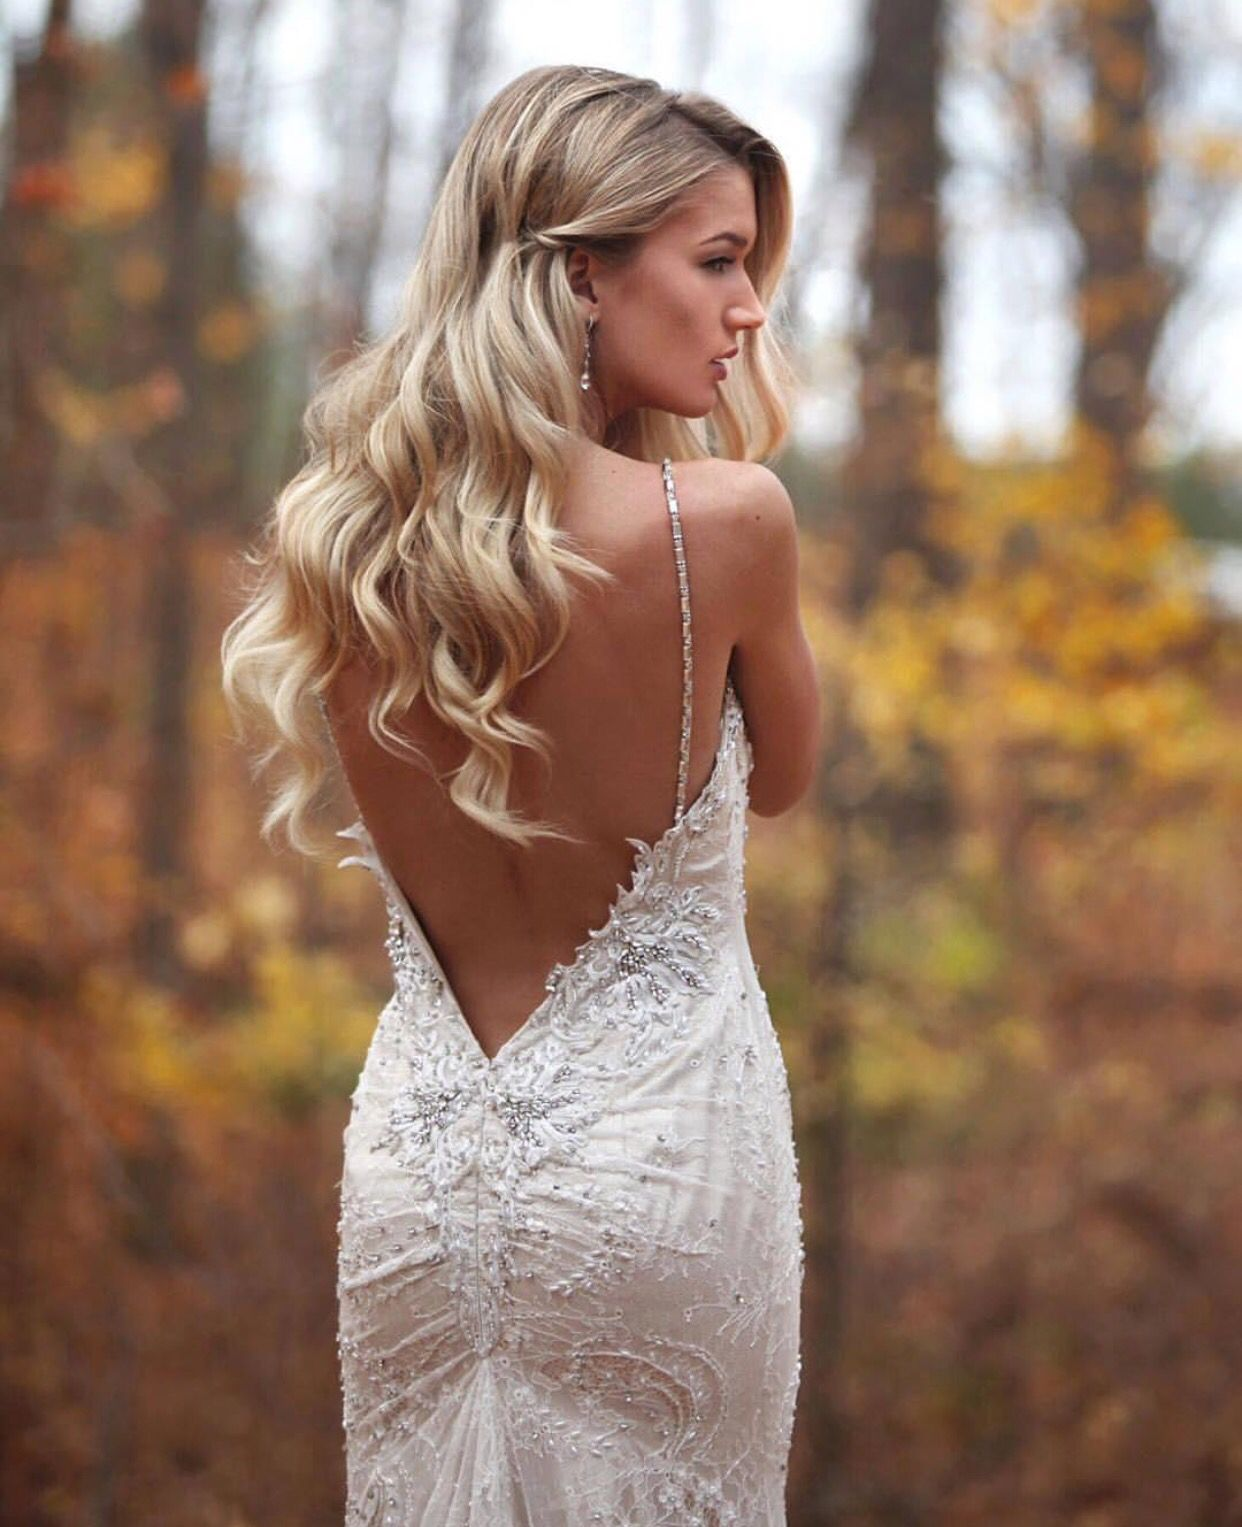 Beautiful Wedding Dress Bride Hairstyles Marisa Wedding Dress Wedding Hairstyles For Long Hair